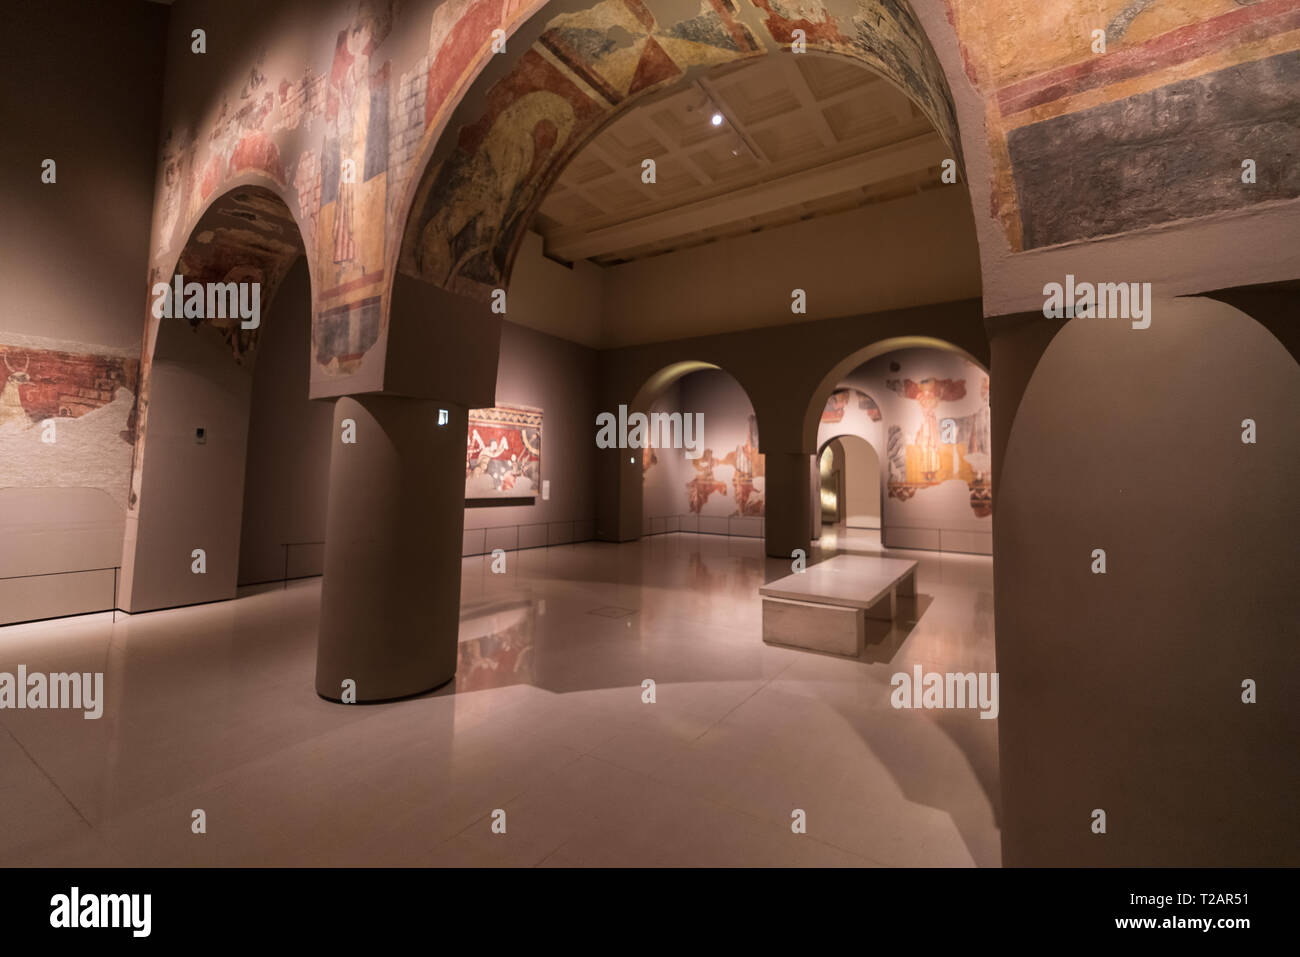 Romanesque art in the National Art Museum of Catalonia,Barcrelona,Church of Sant Joan de Boí, La Vall de Boí, LLeida. - Stock Image